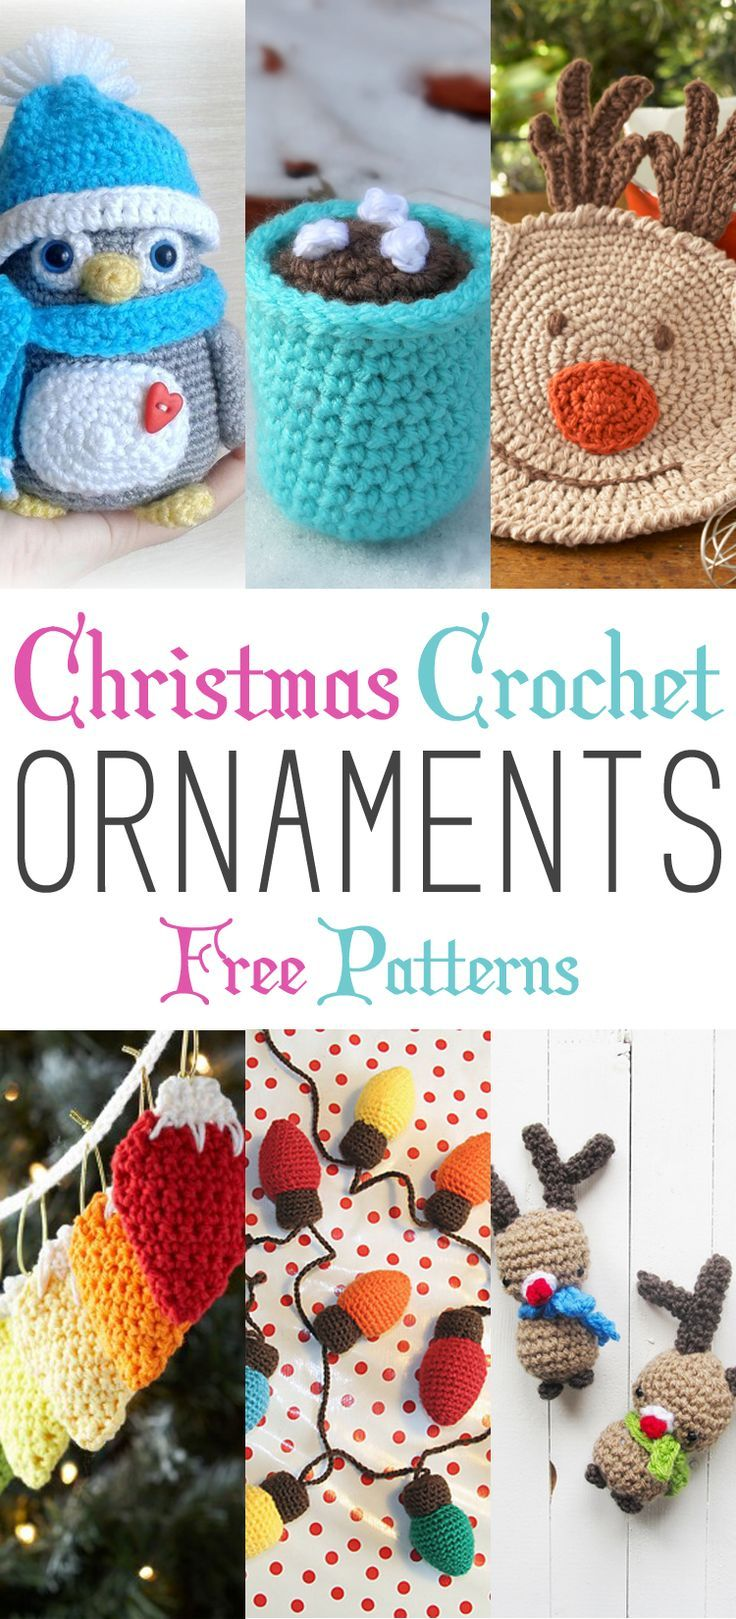 Free Thread Crochet Christmas Ornaments Patterns : Best 25+ Crochet christmas ornaments ideas on Pinterest